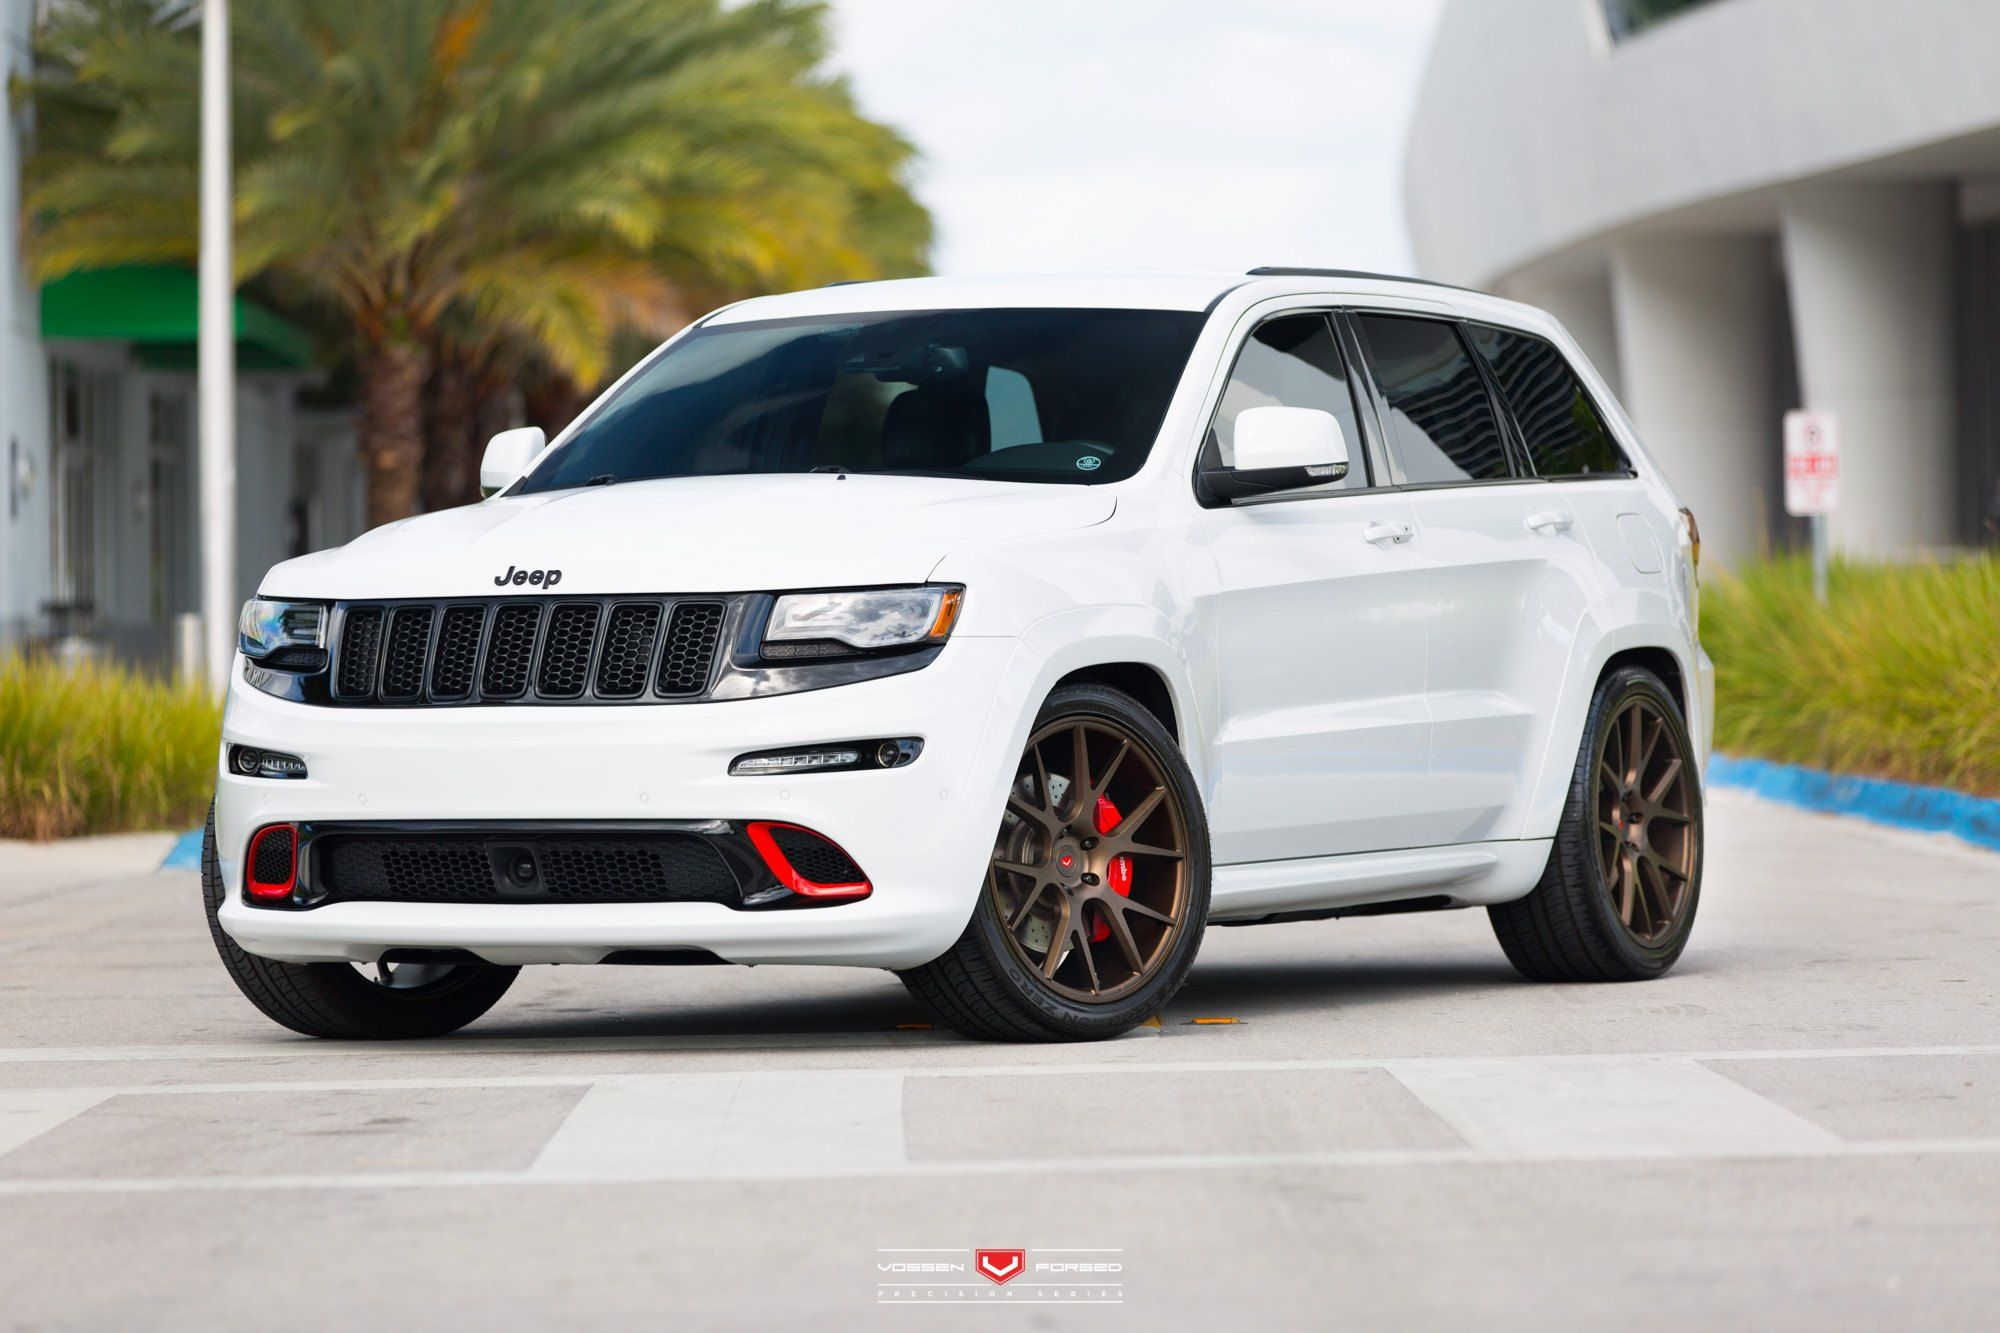 Custom Jeep Grand Cherokee With Red Accents And Vossen Wheels Jeep Srt8 Jeep Cars Jeep Grand Cherokee Srt